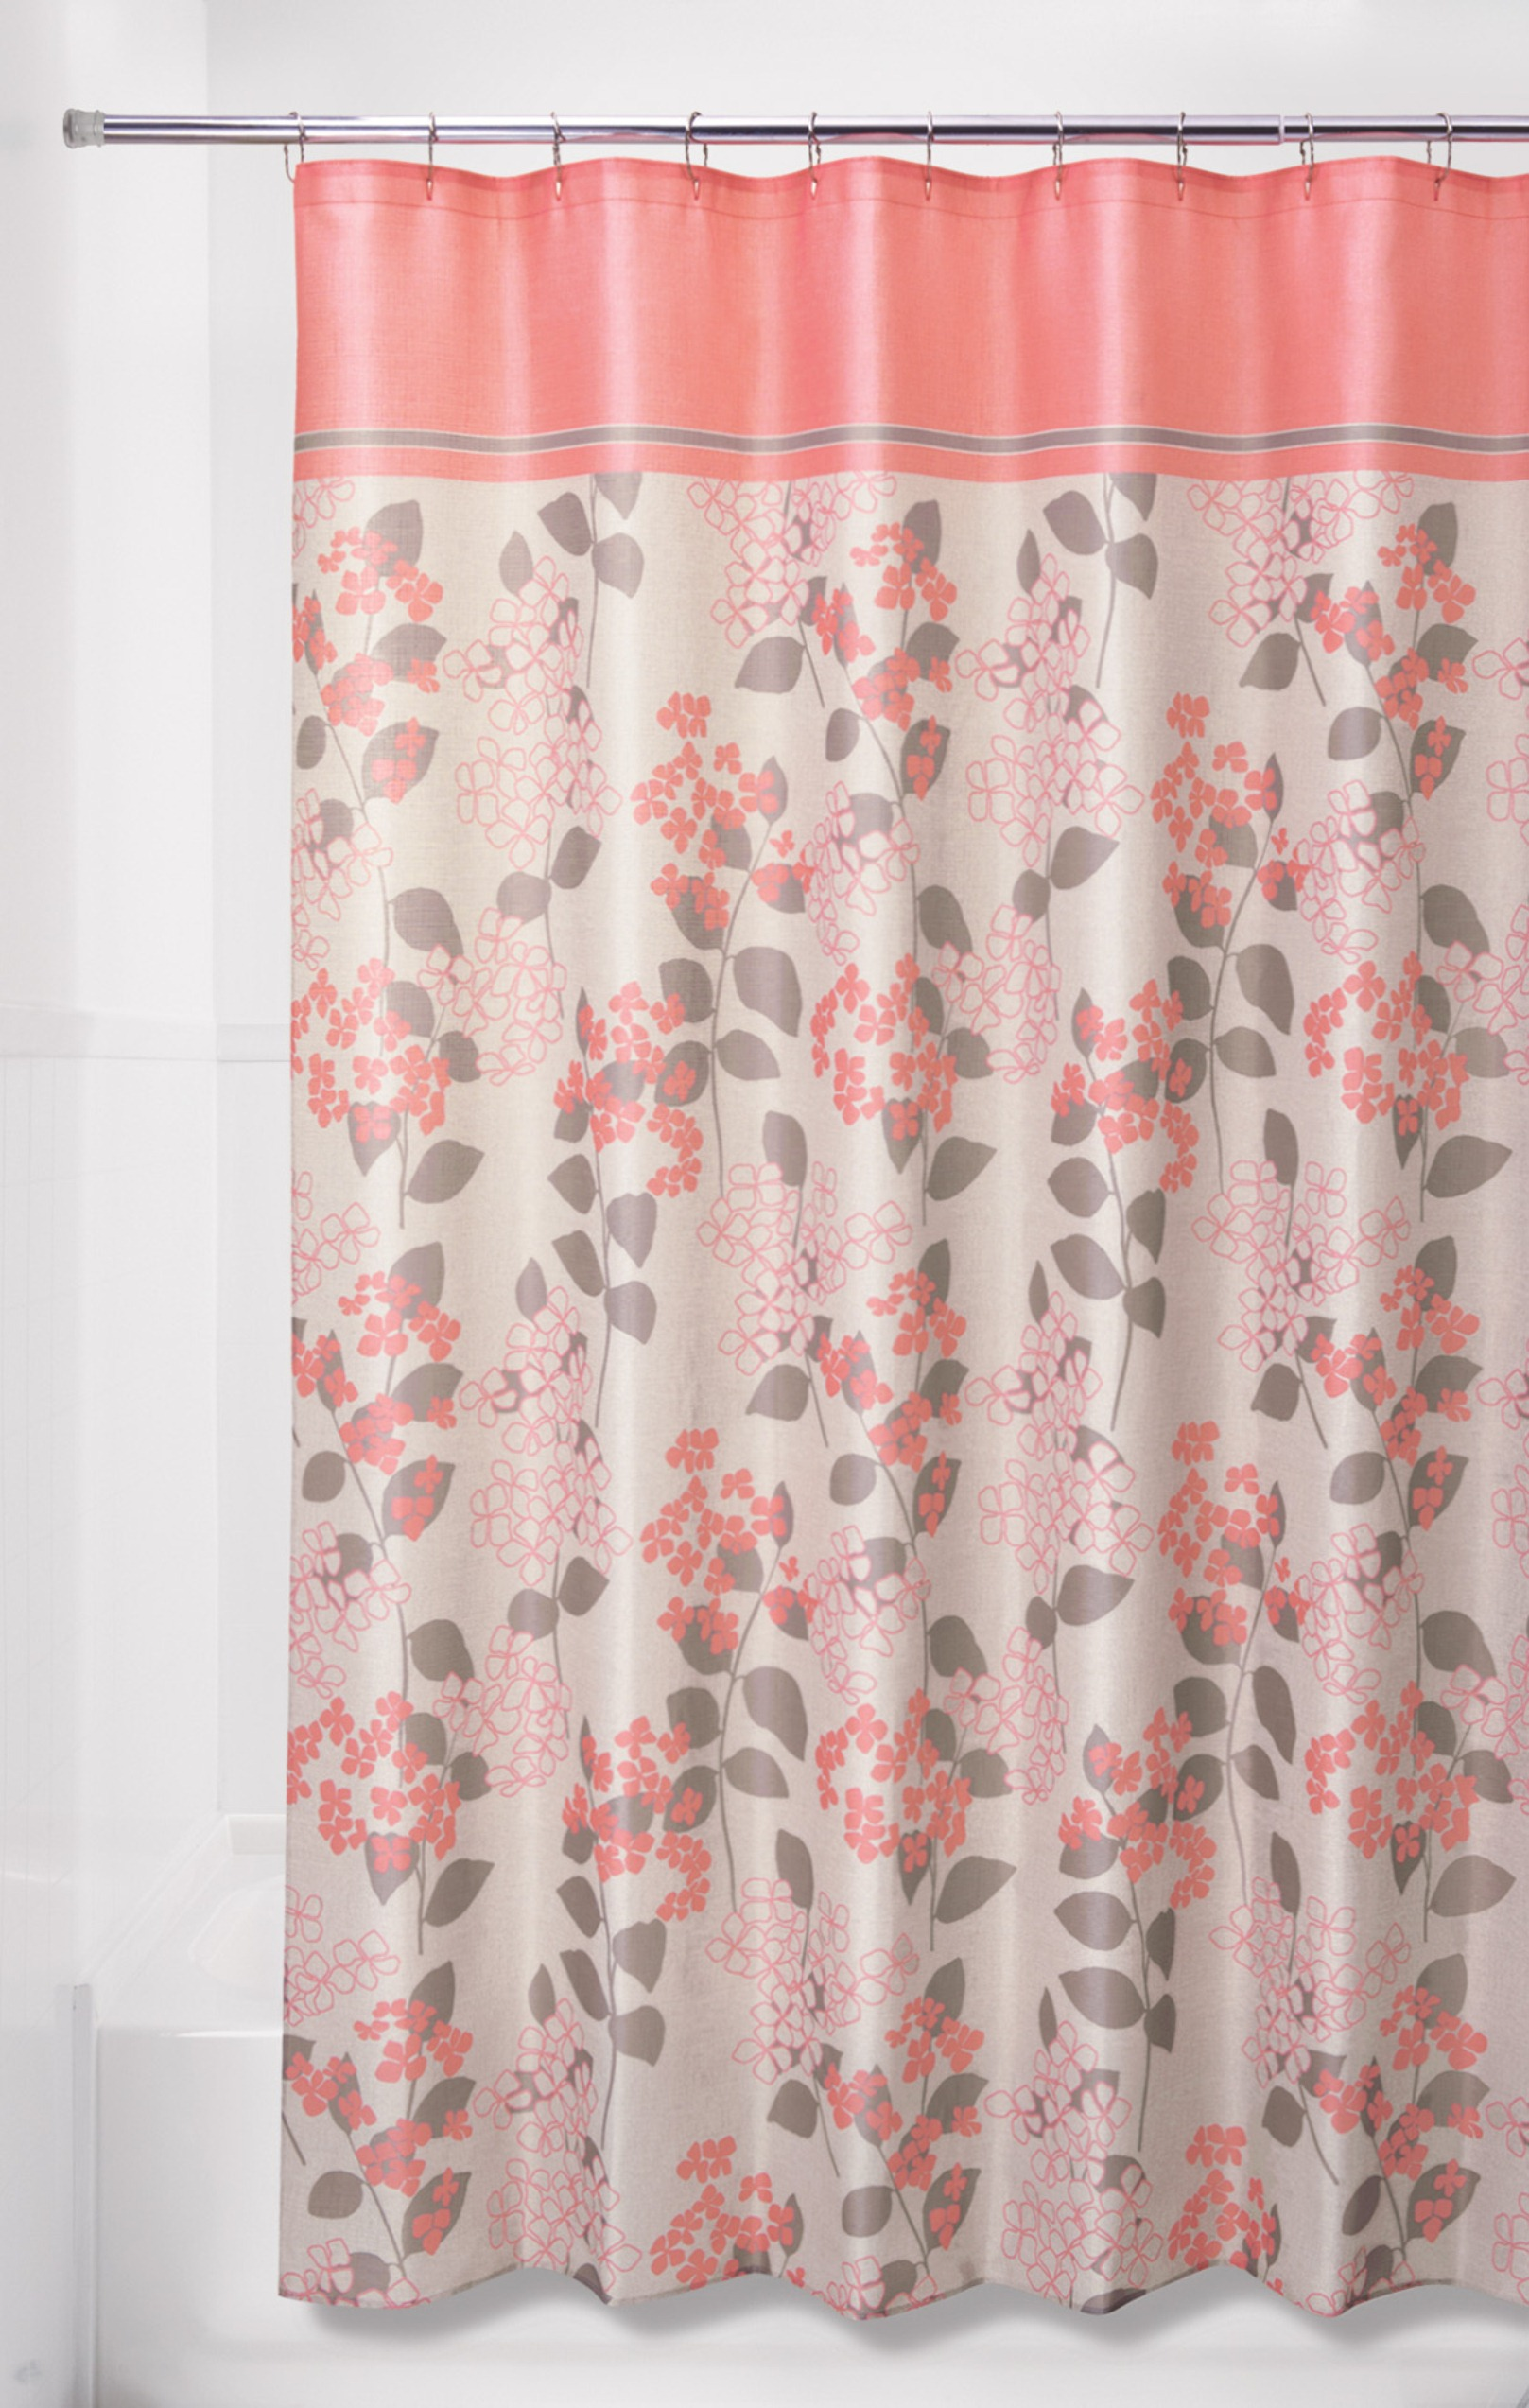 Floral Shower Curtain | Dark Green Shower Curtain | Neutral Shower Curtains